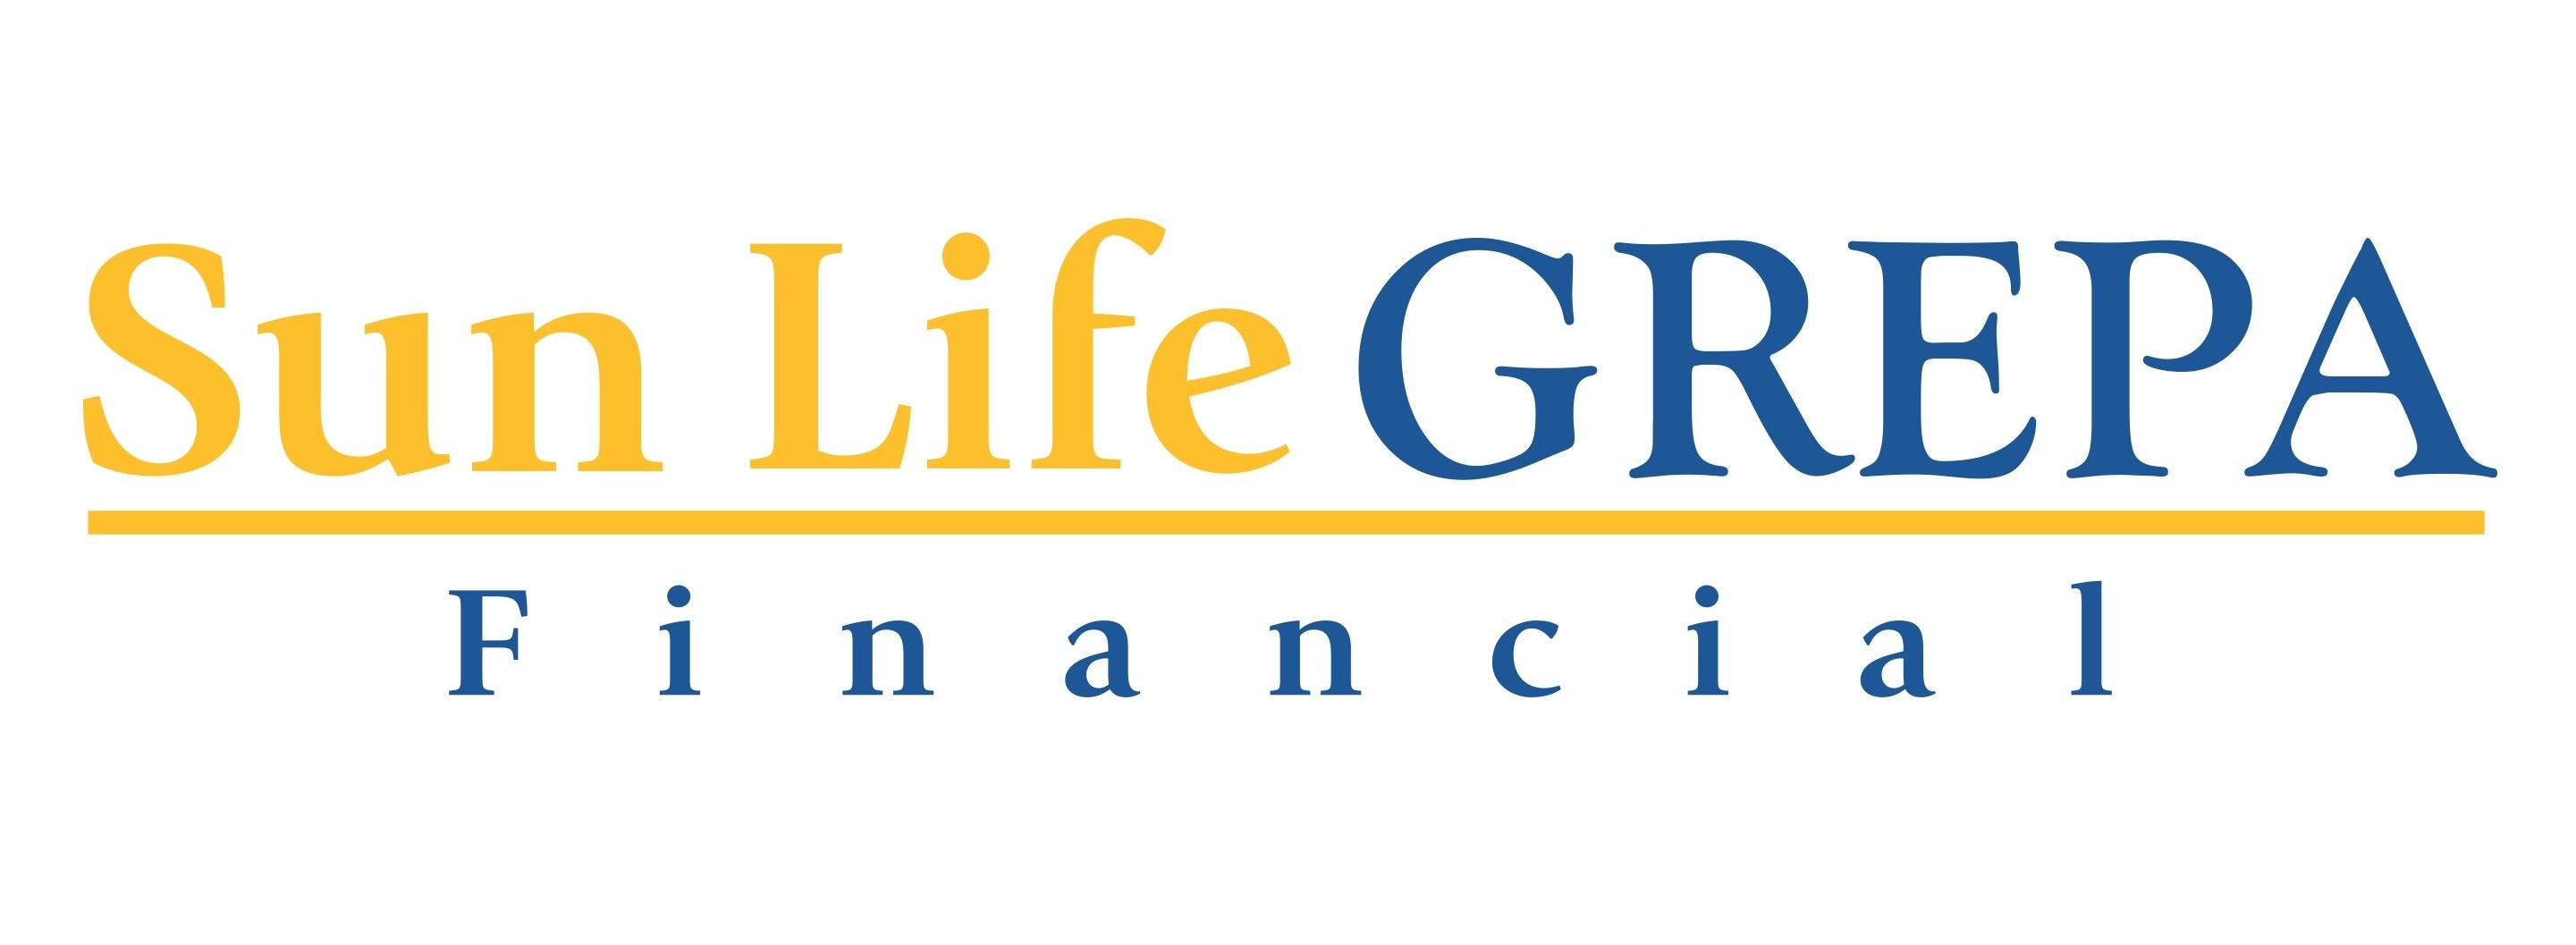 Sun Life GREPA Financial